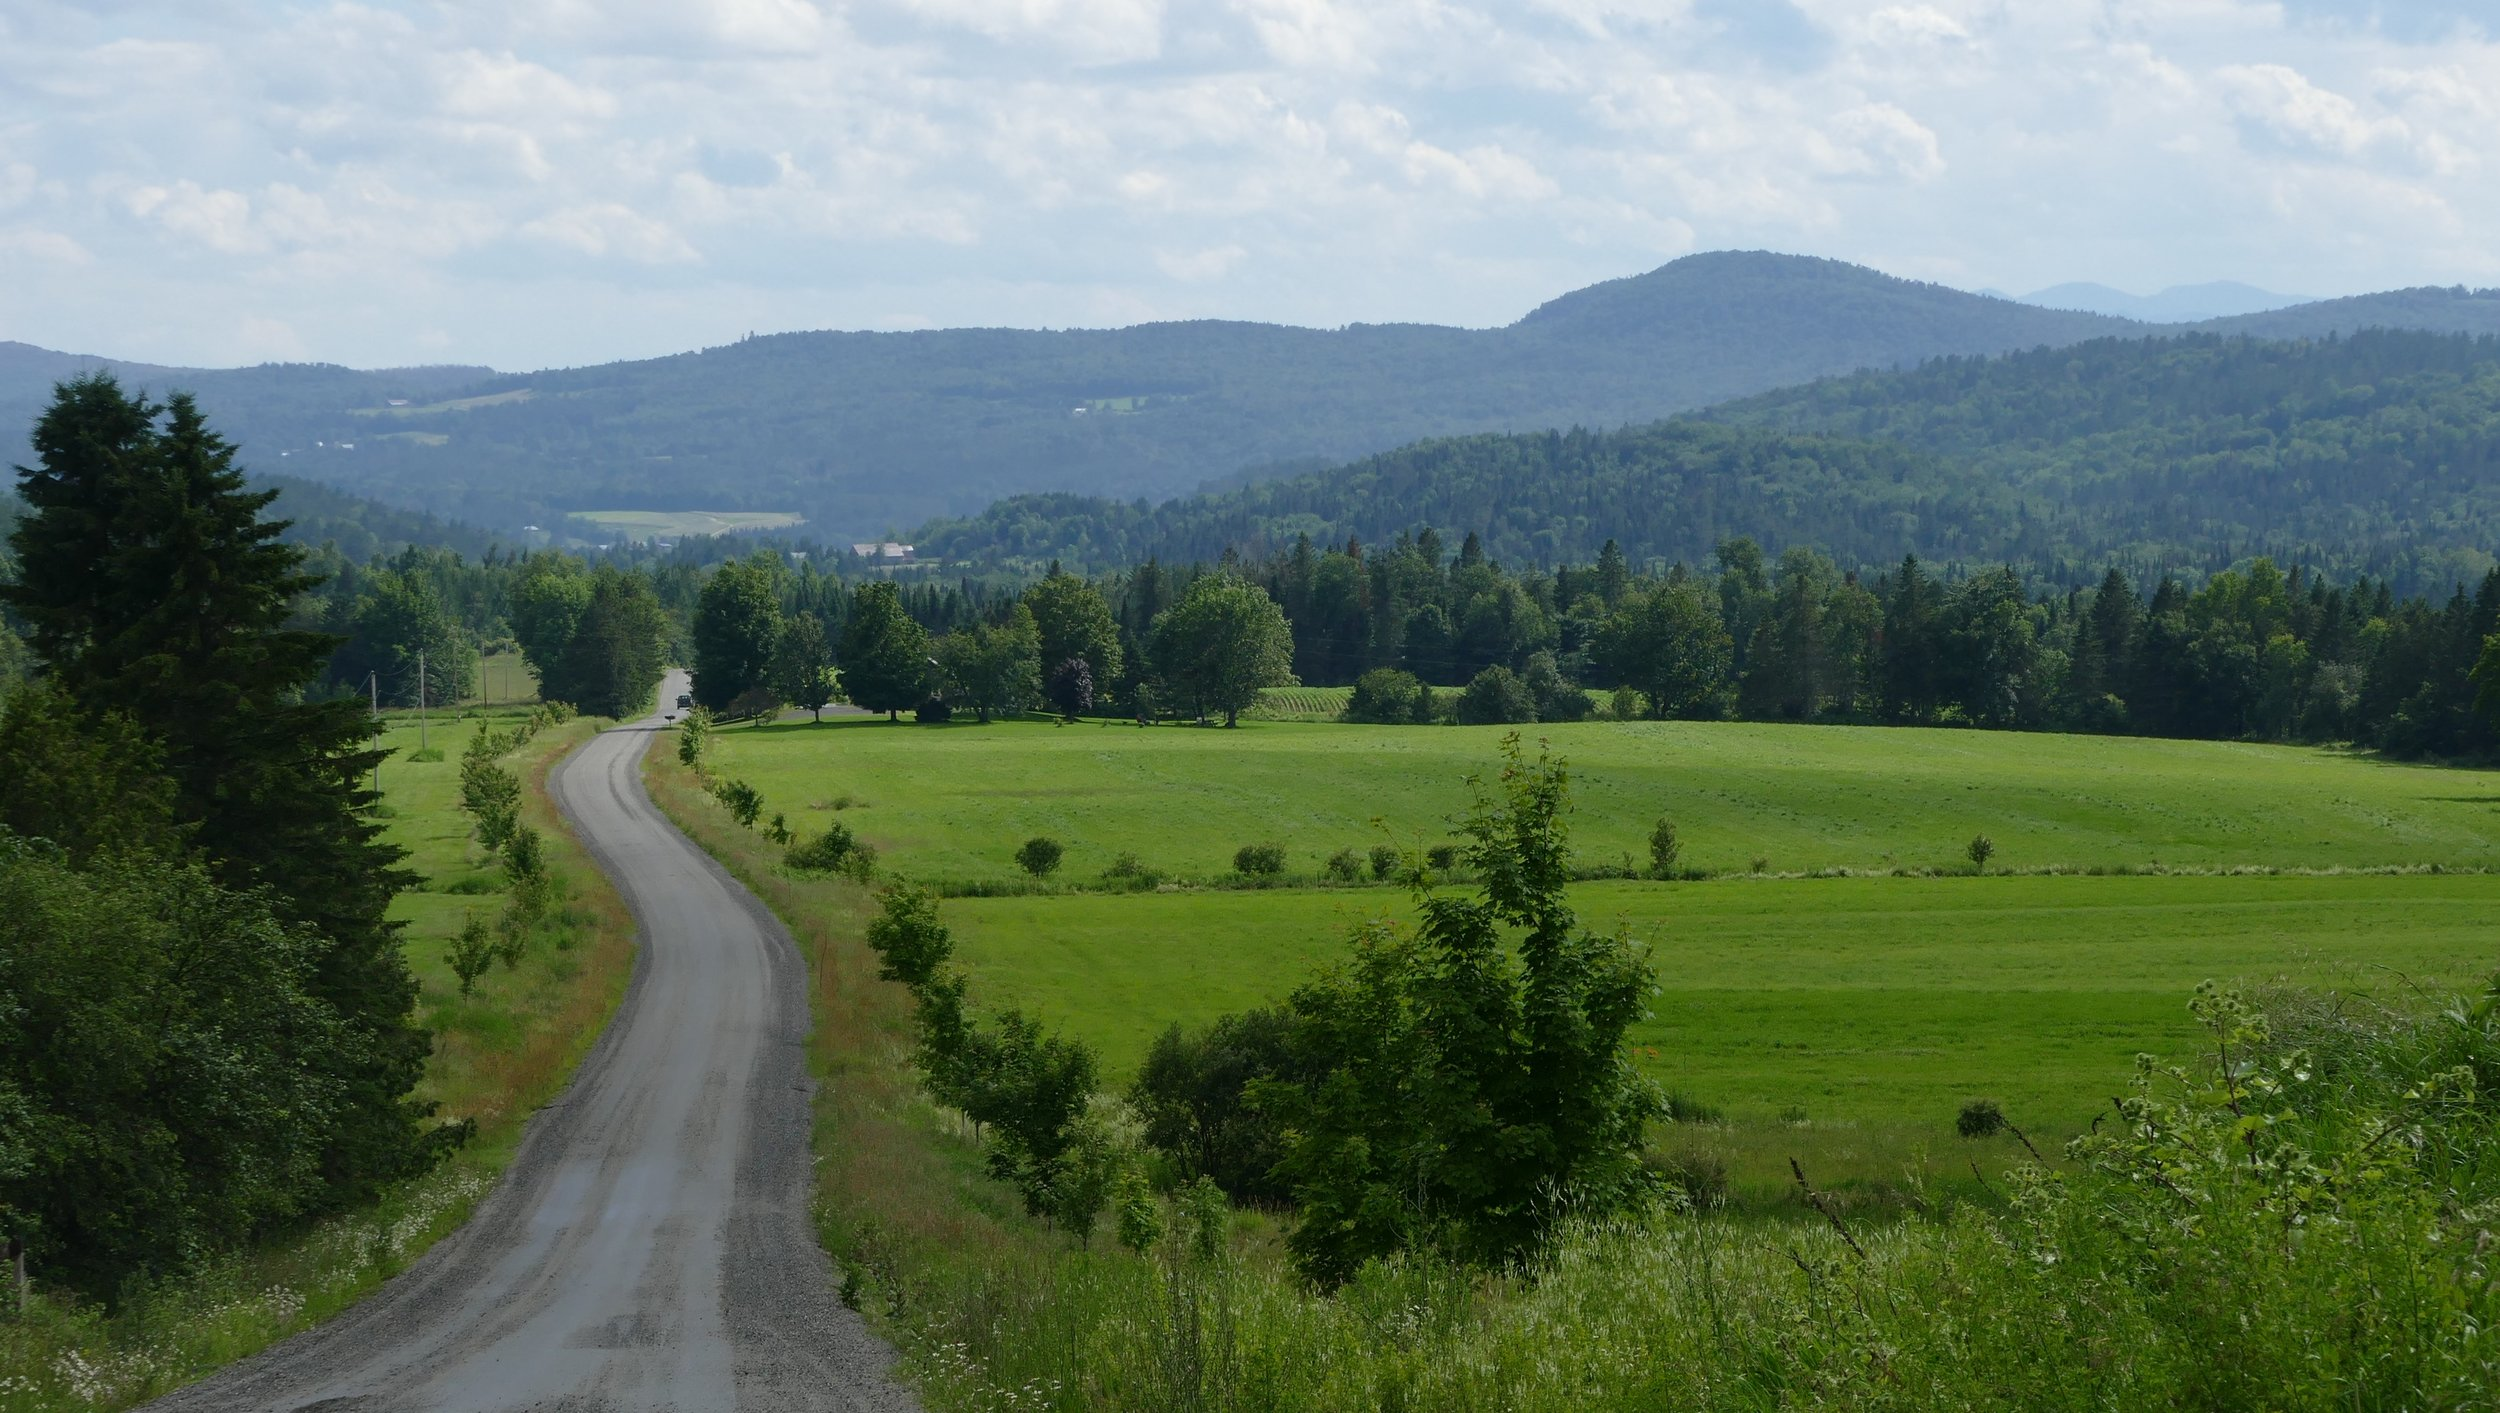 Vermont's back roads were scenic and steep. I didn't take pictures of the steep roads because I was busy biking up them!